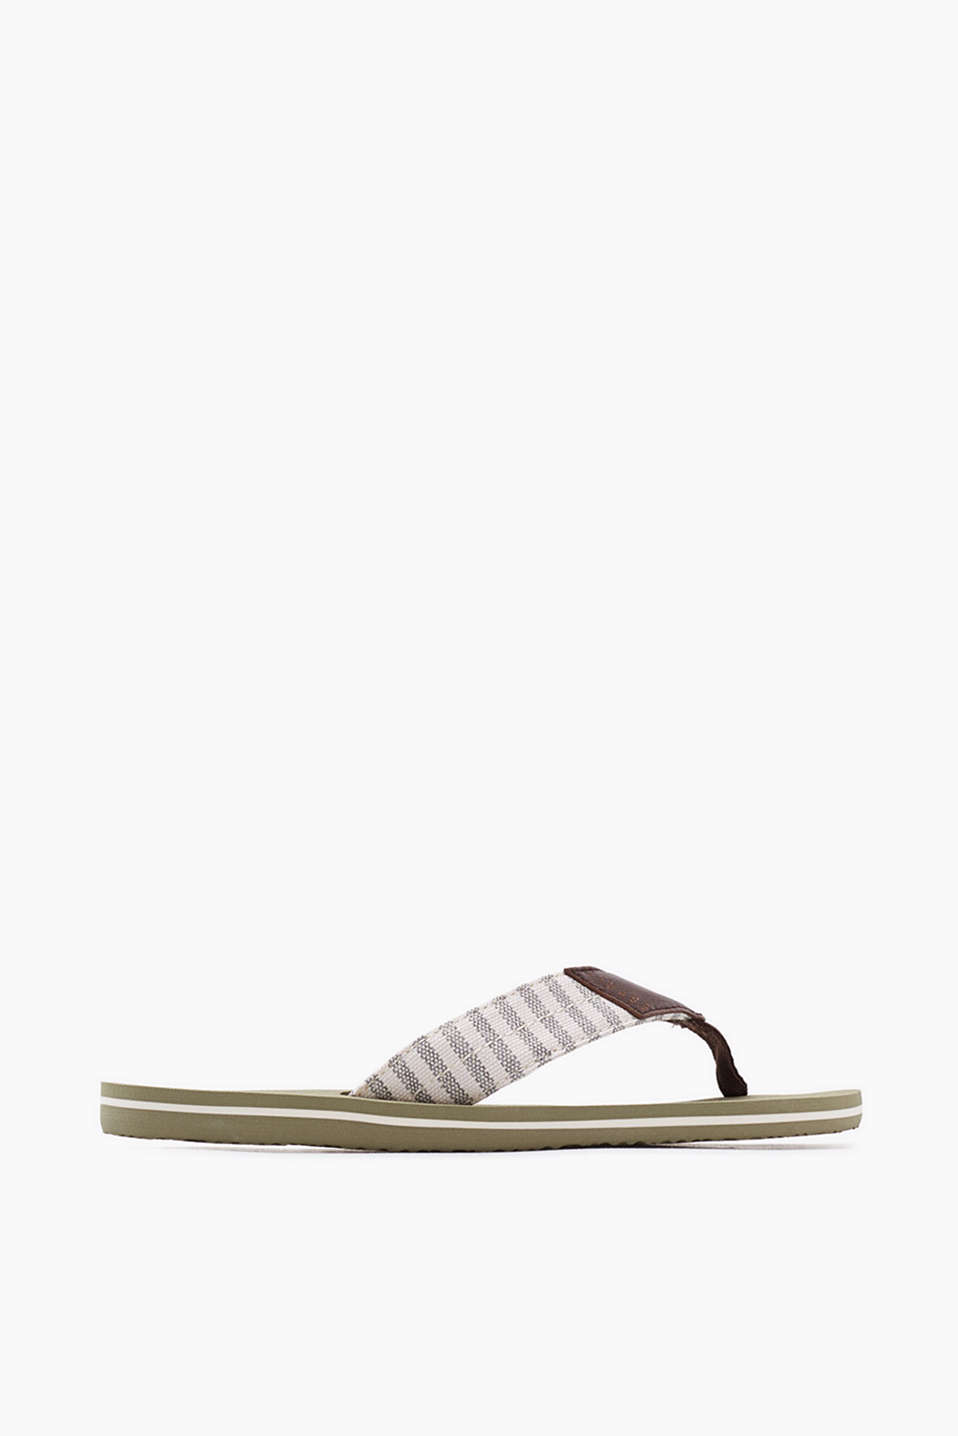 City thong sandals with cotton canvas straps